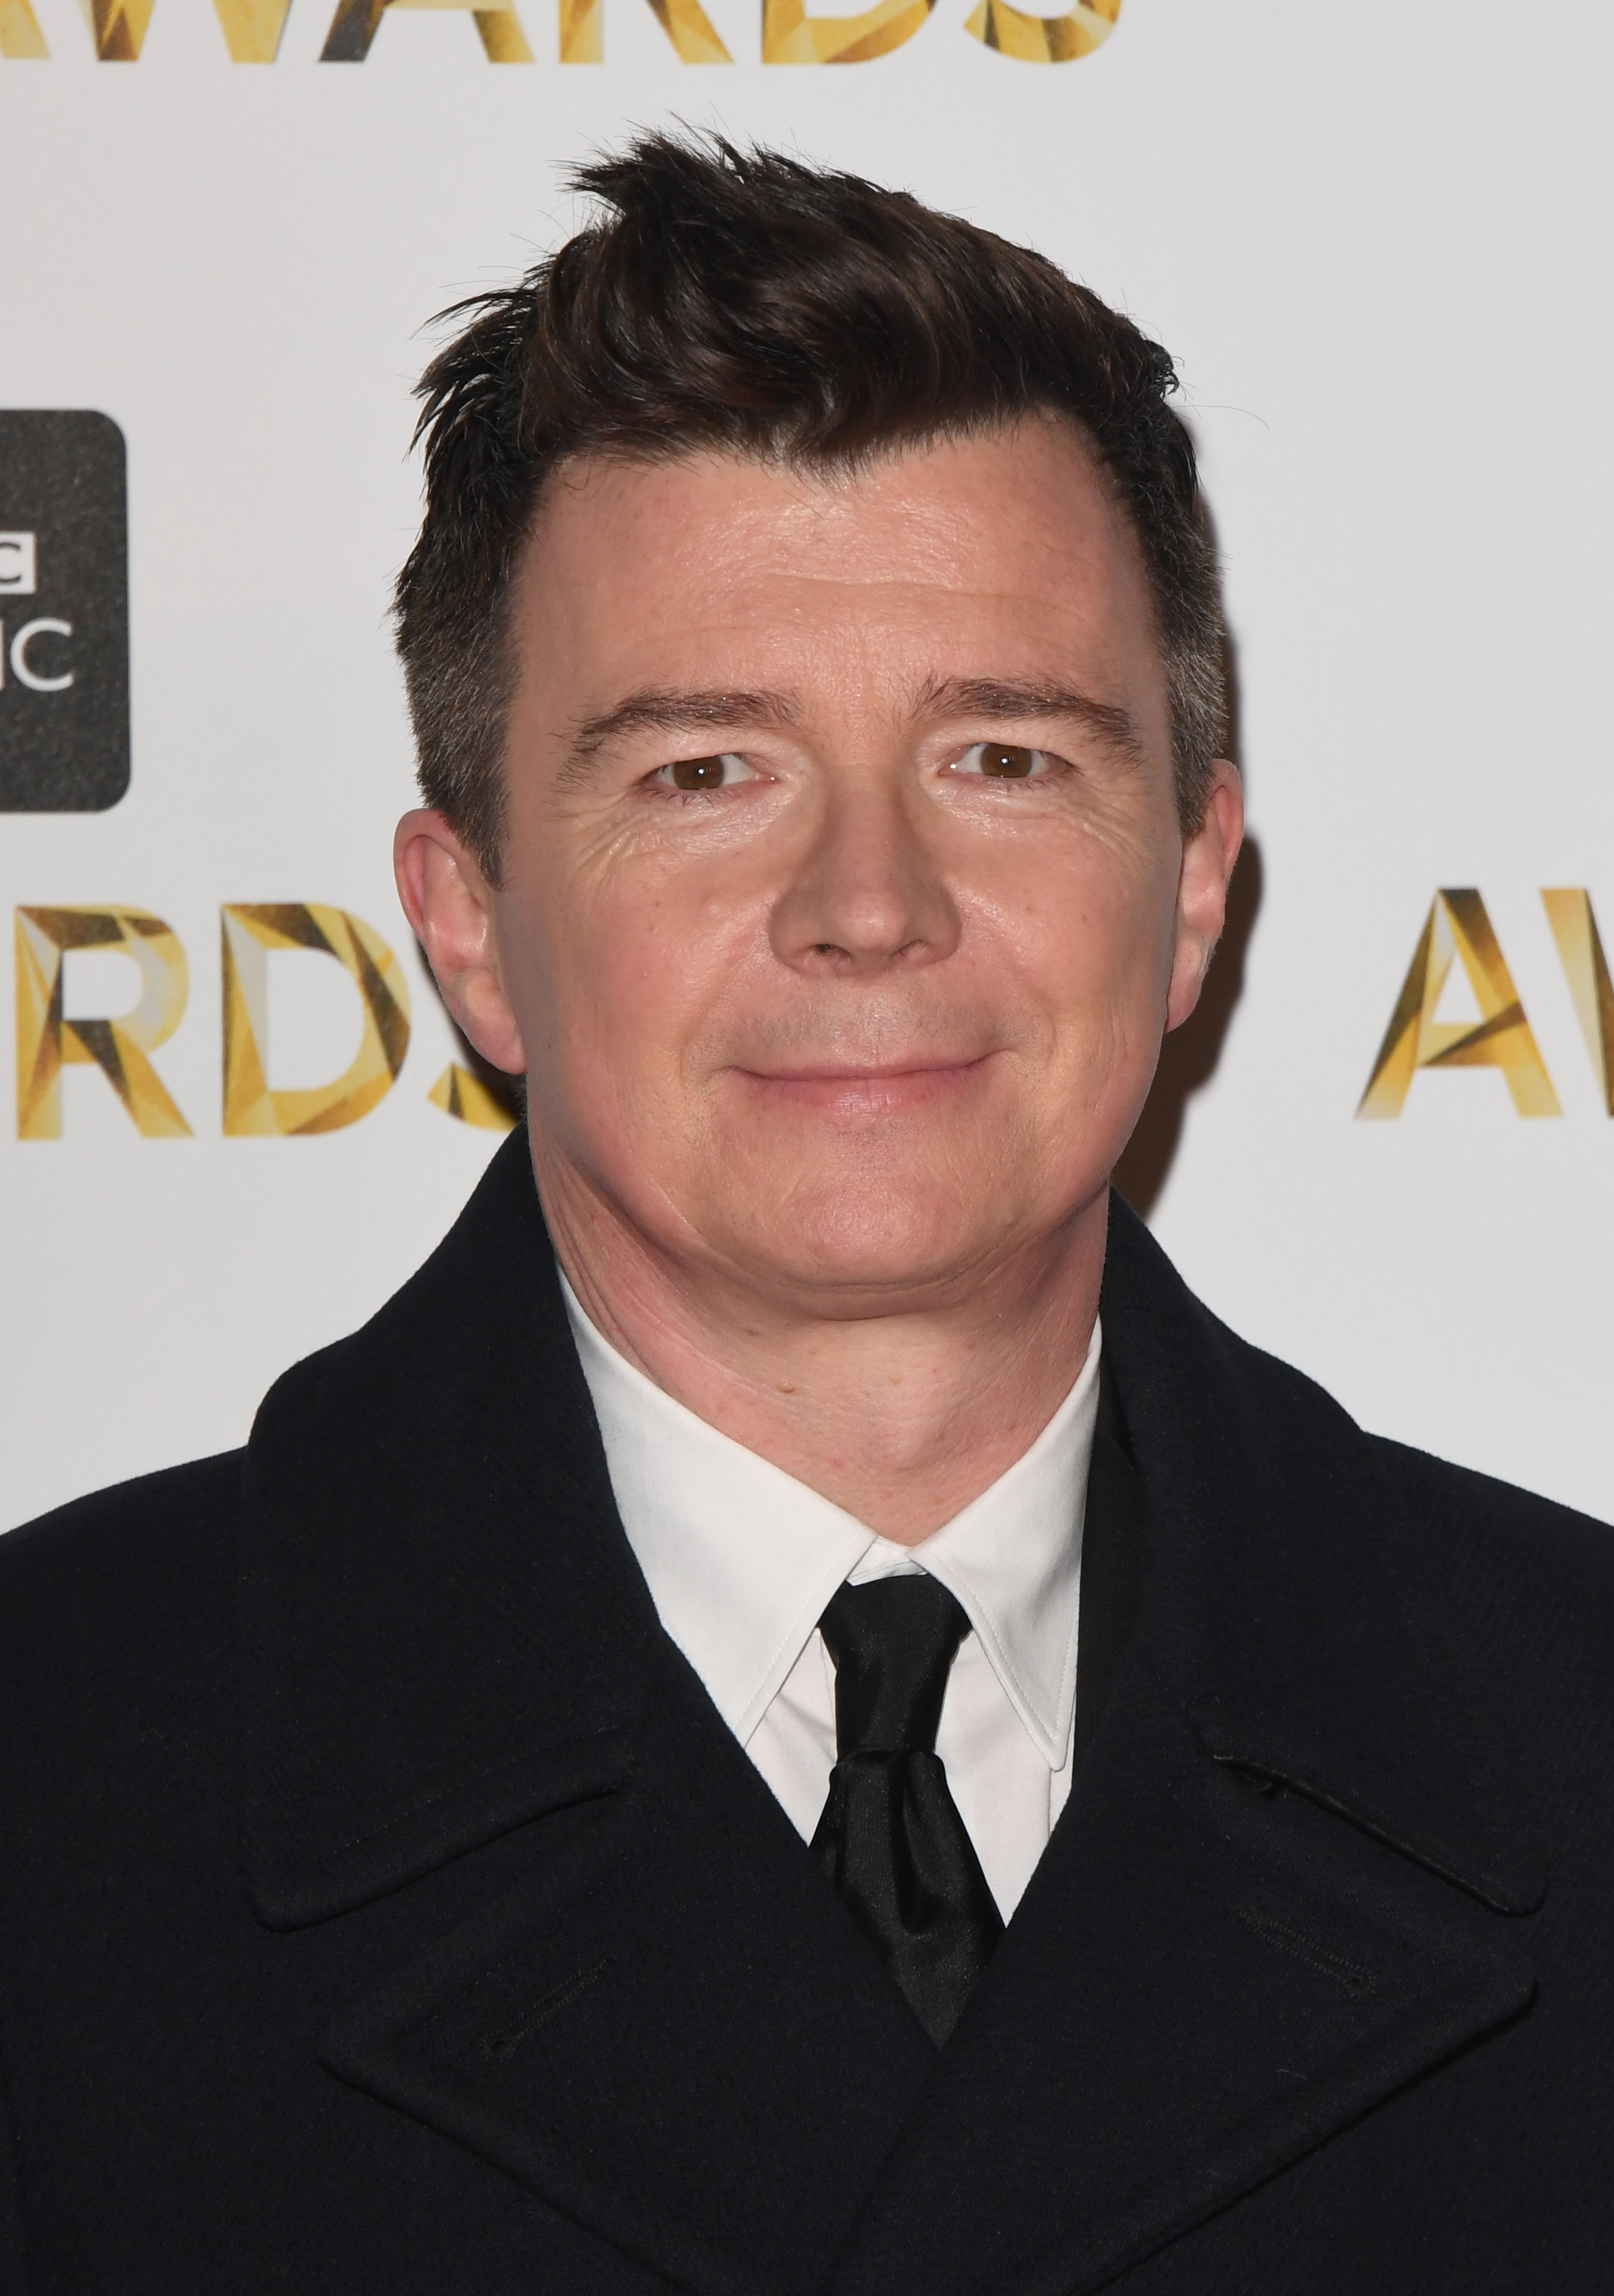 Rick Astley says he would be fooling himself if he didn't embrace 'Never Gonna Give You Up'